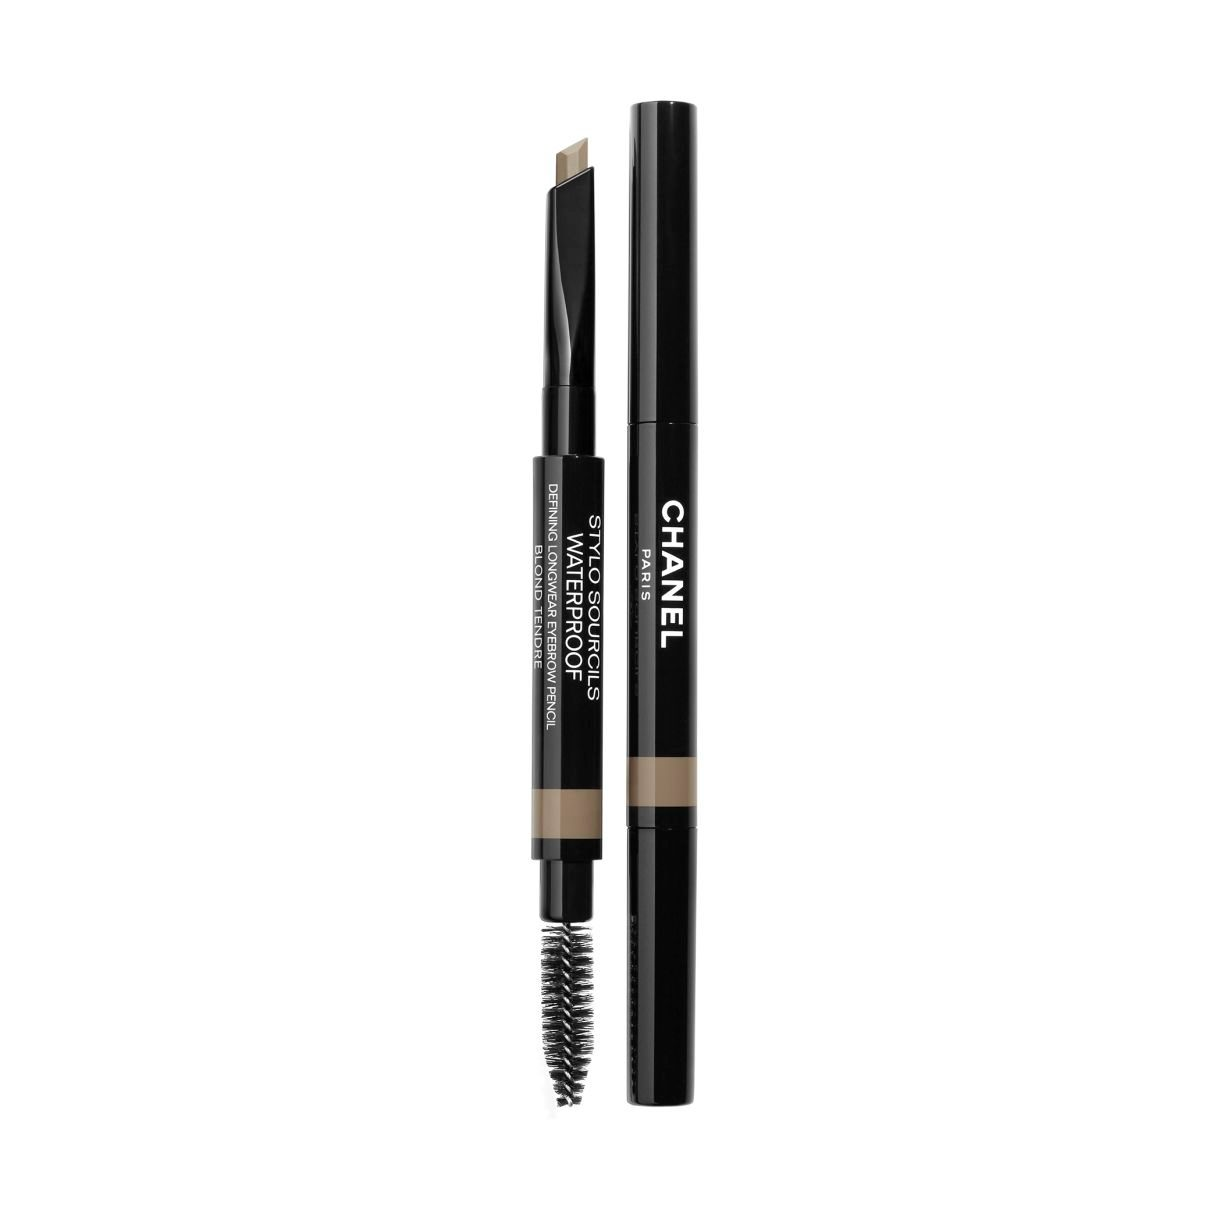 STYLO SOURCILS WATERPROOF DEFINING LONGWEAR EYEBROW PENCIL 806 BLOND TENDRE 0.27G